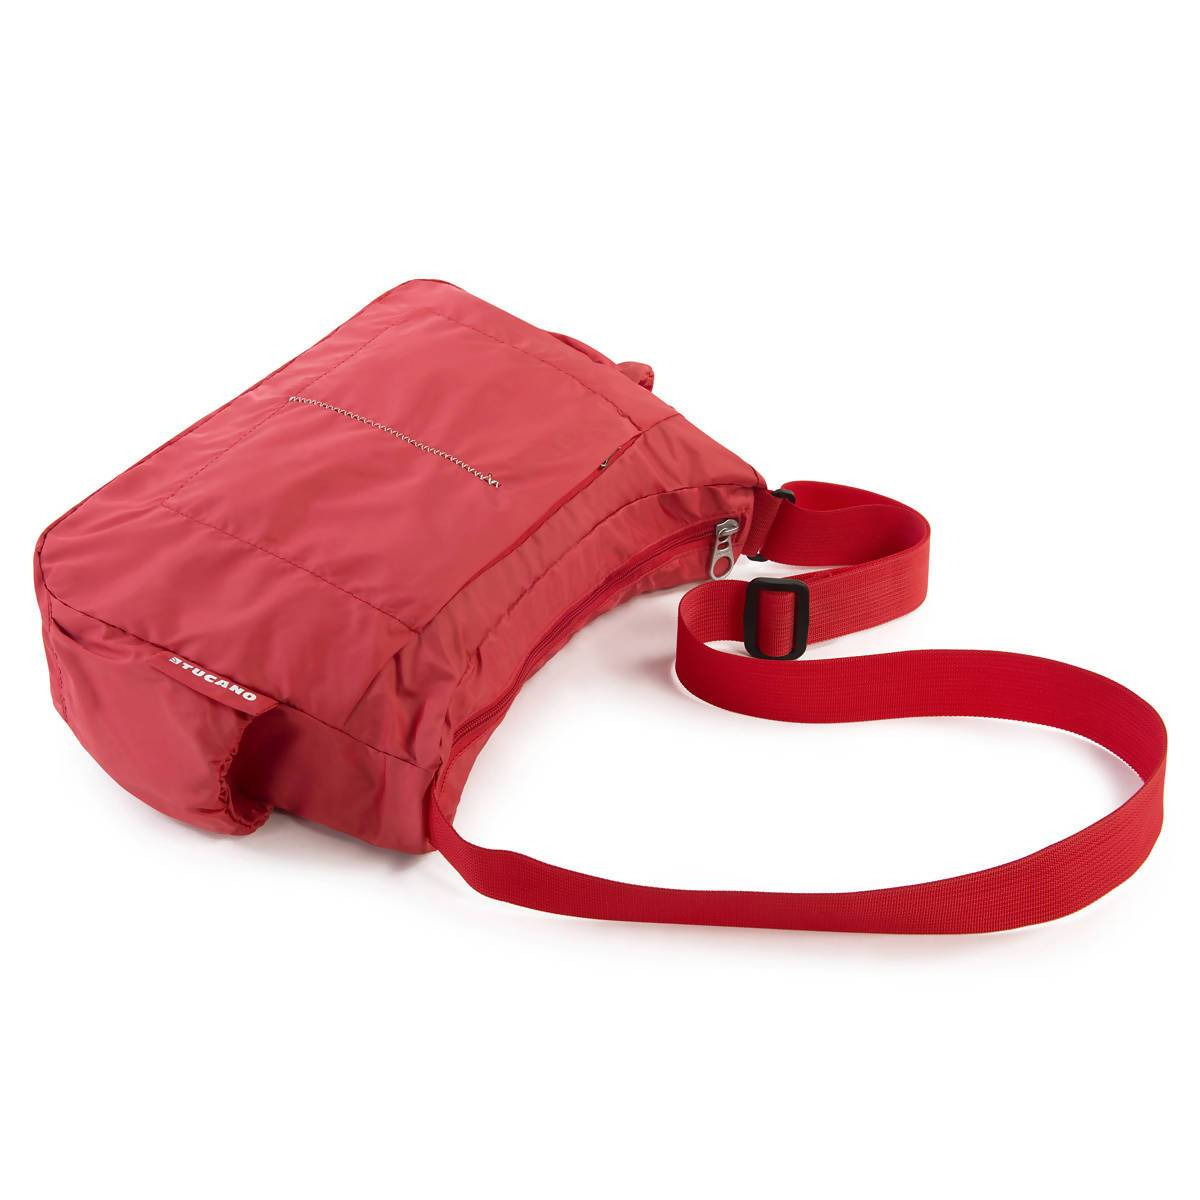 Compact Foldable Sling Bag - New Arrivals - Zigzagme - Naiise